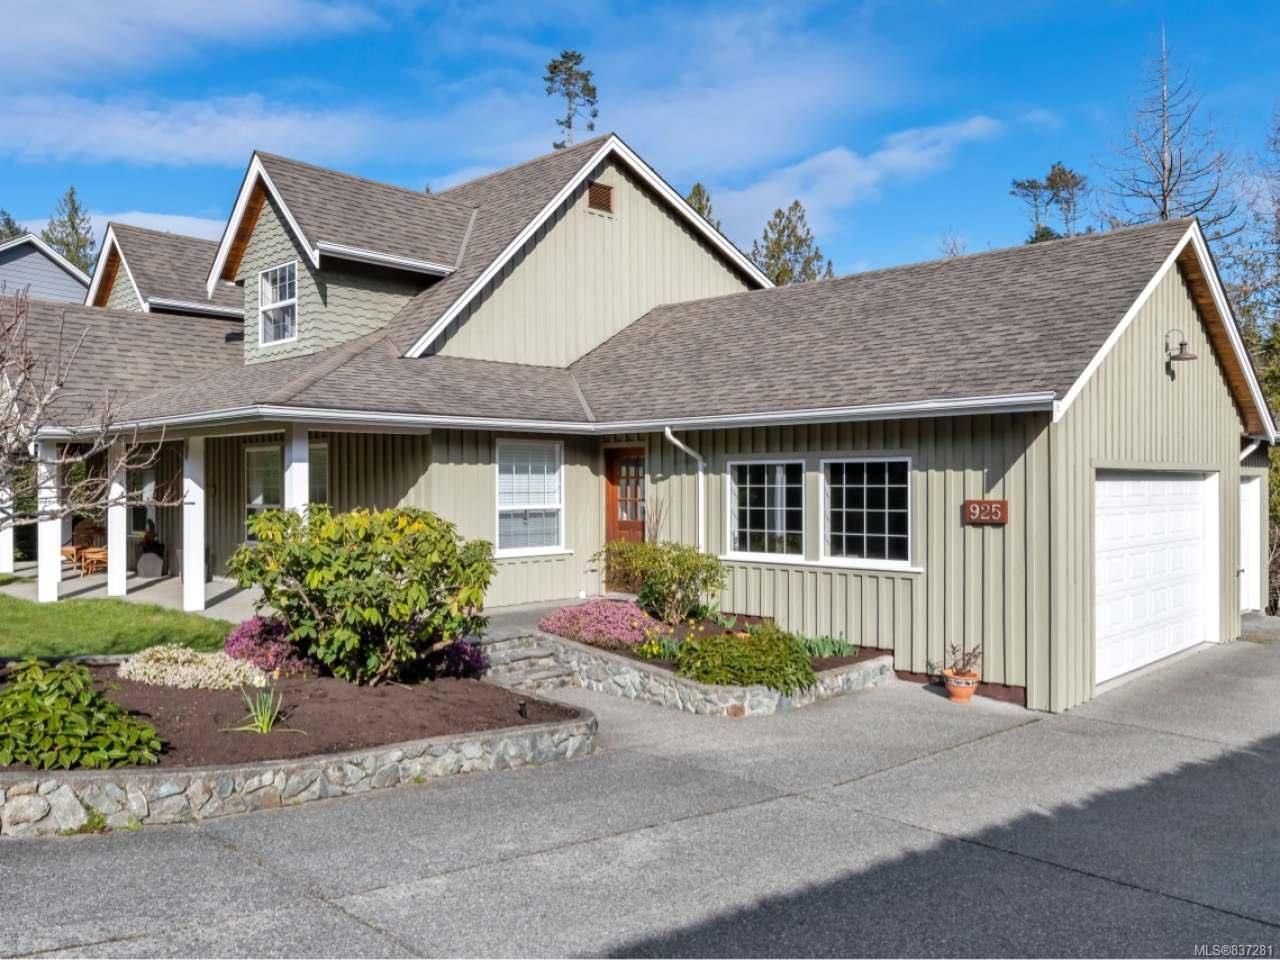 Photo 54: Photos: 925 Lilmac Rd in MILL BAY: ML Mill Bay House for sale (Malahat & Area)  : MLS®# 837281